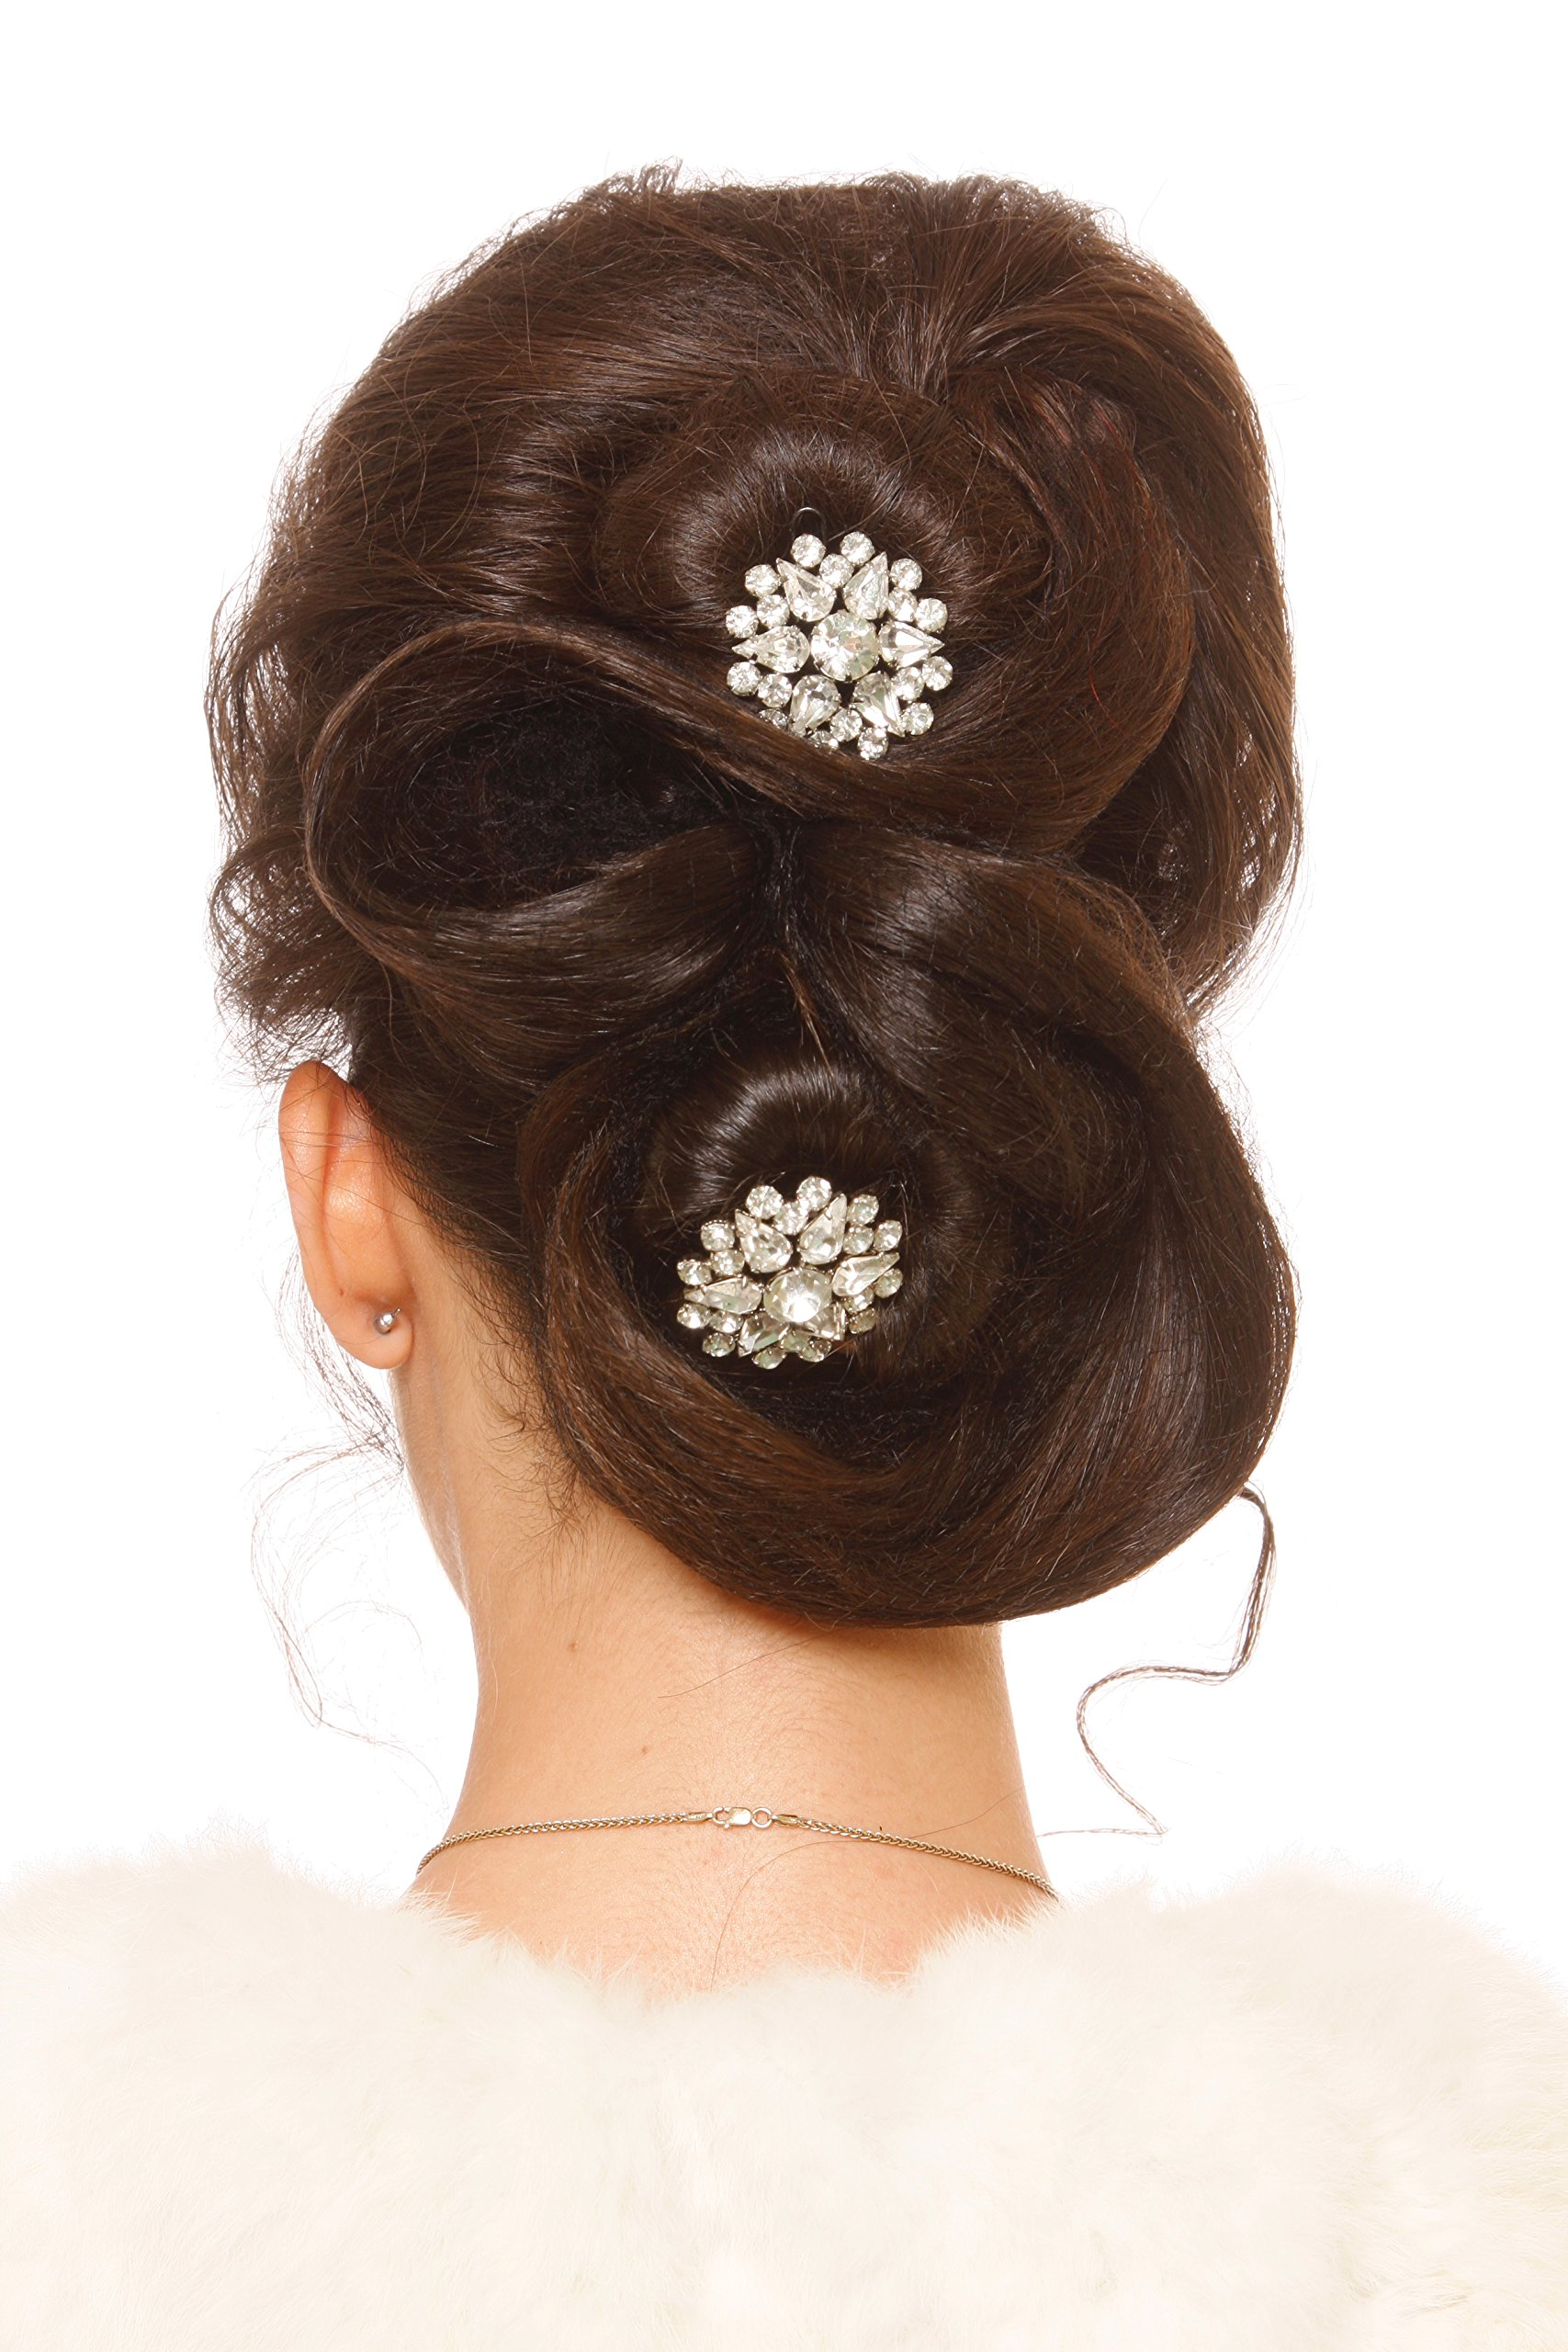 Ballerina Bunmaker-Klicinz Tool to Make Ballerina Bun Instantly-Exceptional Hold Without Hairpins-Get Salon Looking Hair in Seconds- Easy to Use- Frustration Free-Saves Time-Look Great with Celeb Look by Klicinz (Image #1)